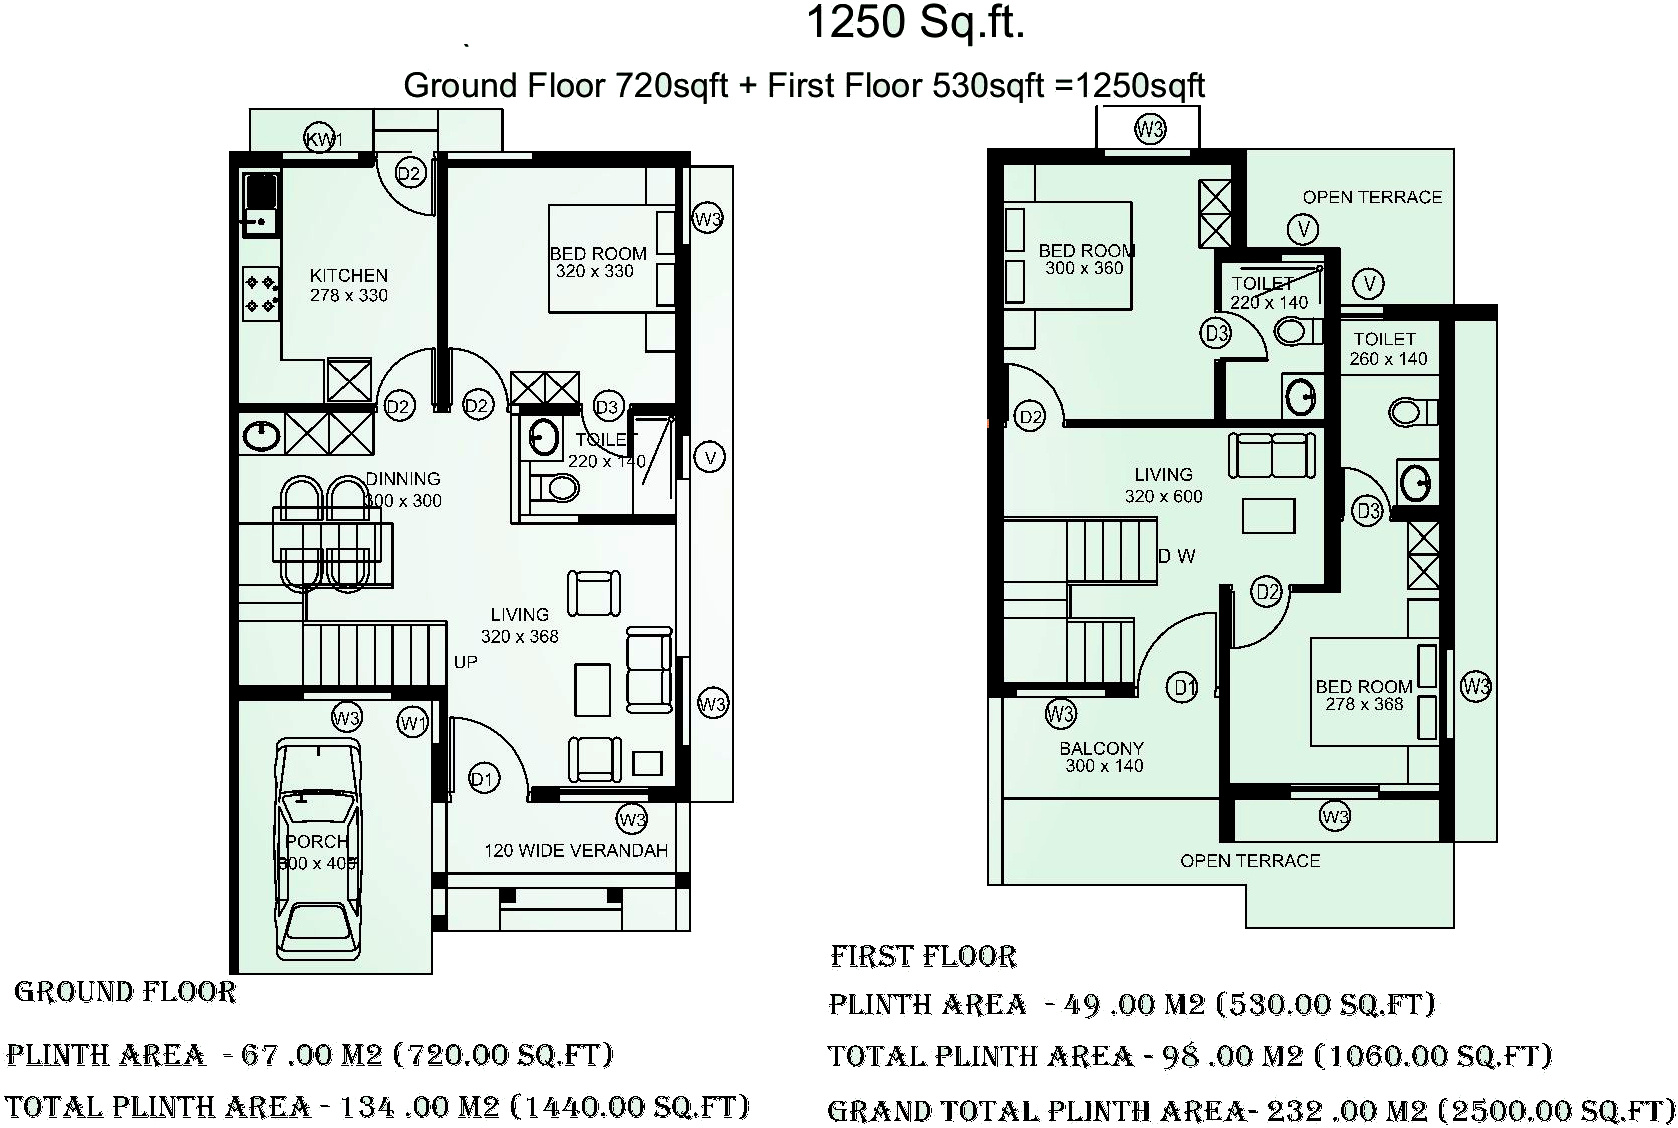 mather house floor plan - 28 images - mather house floor plan ...